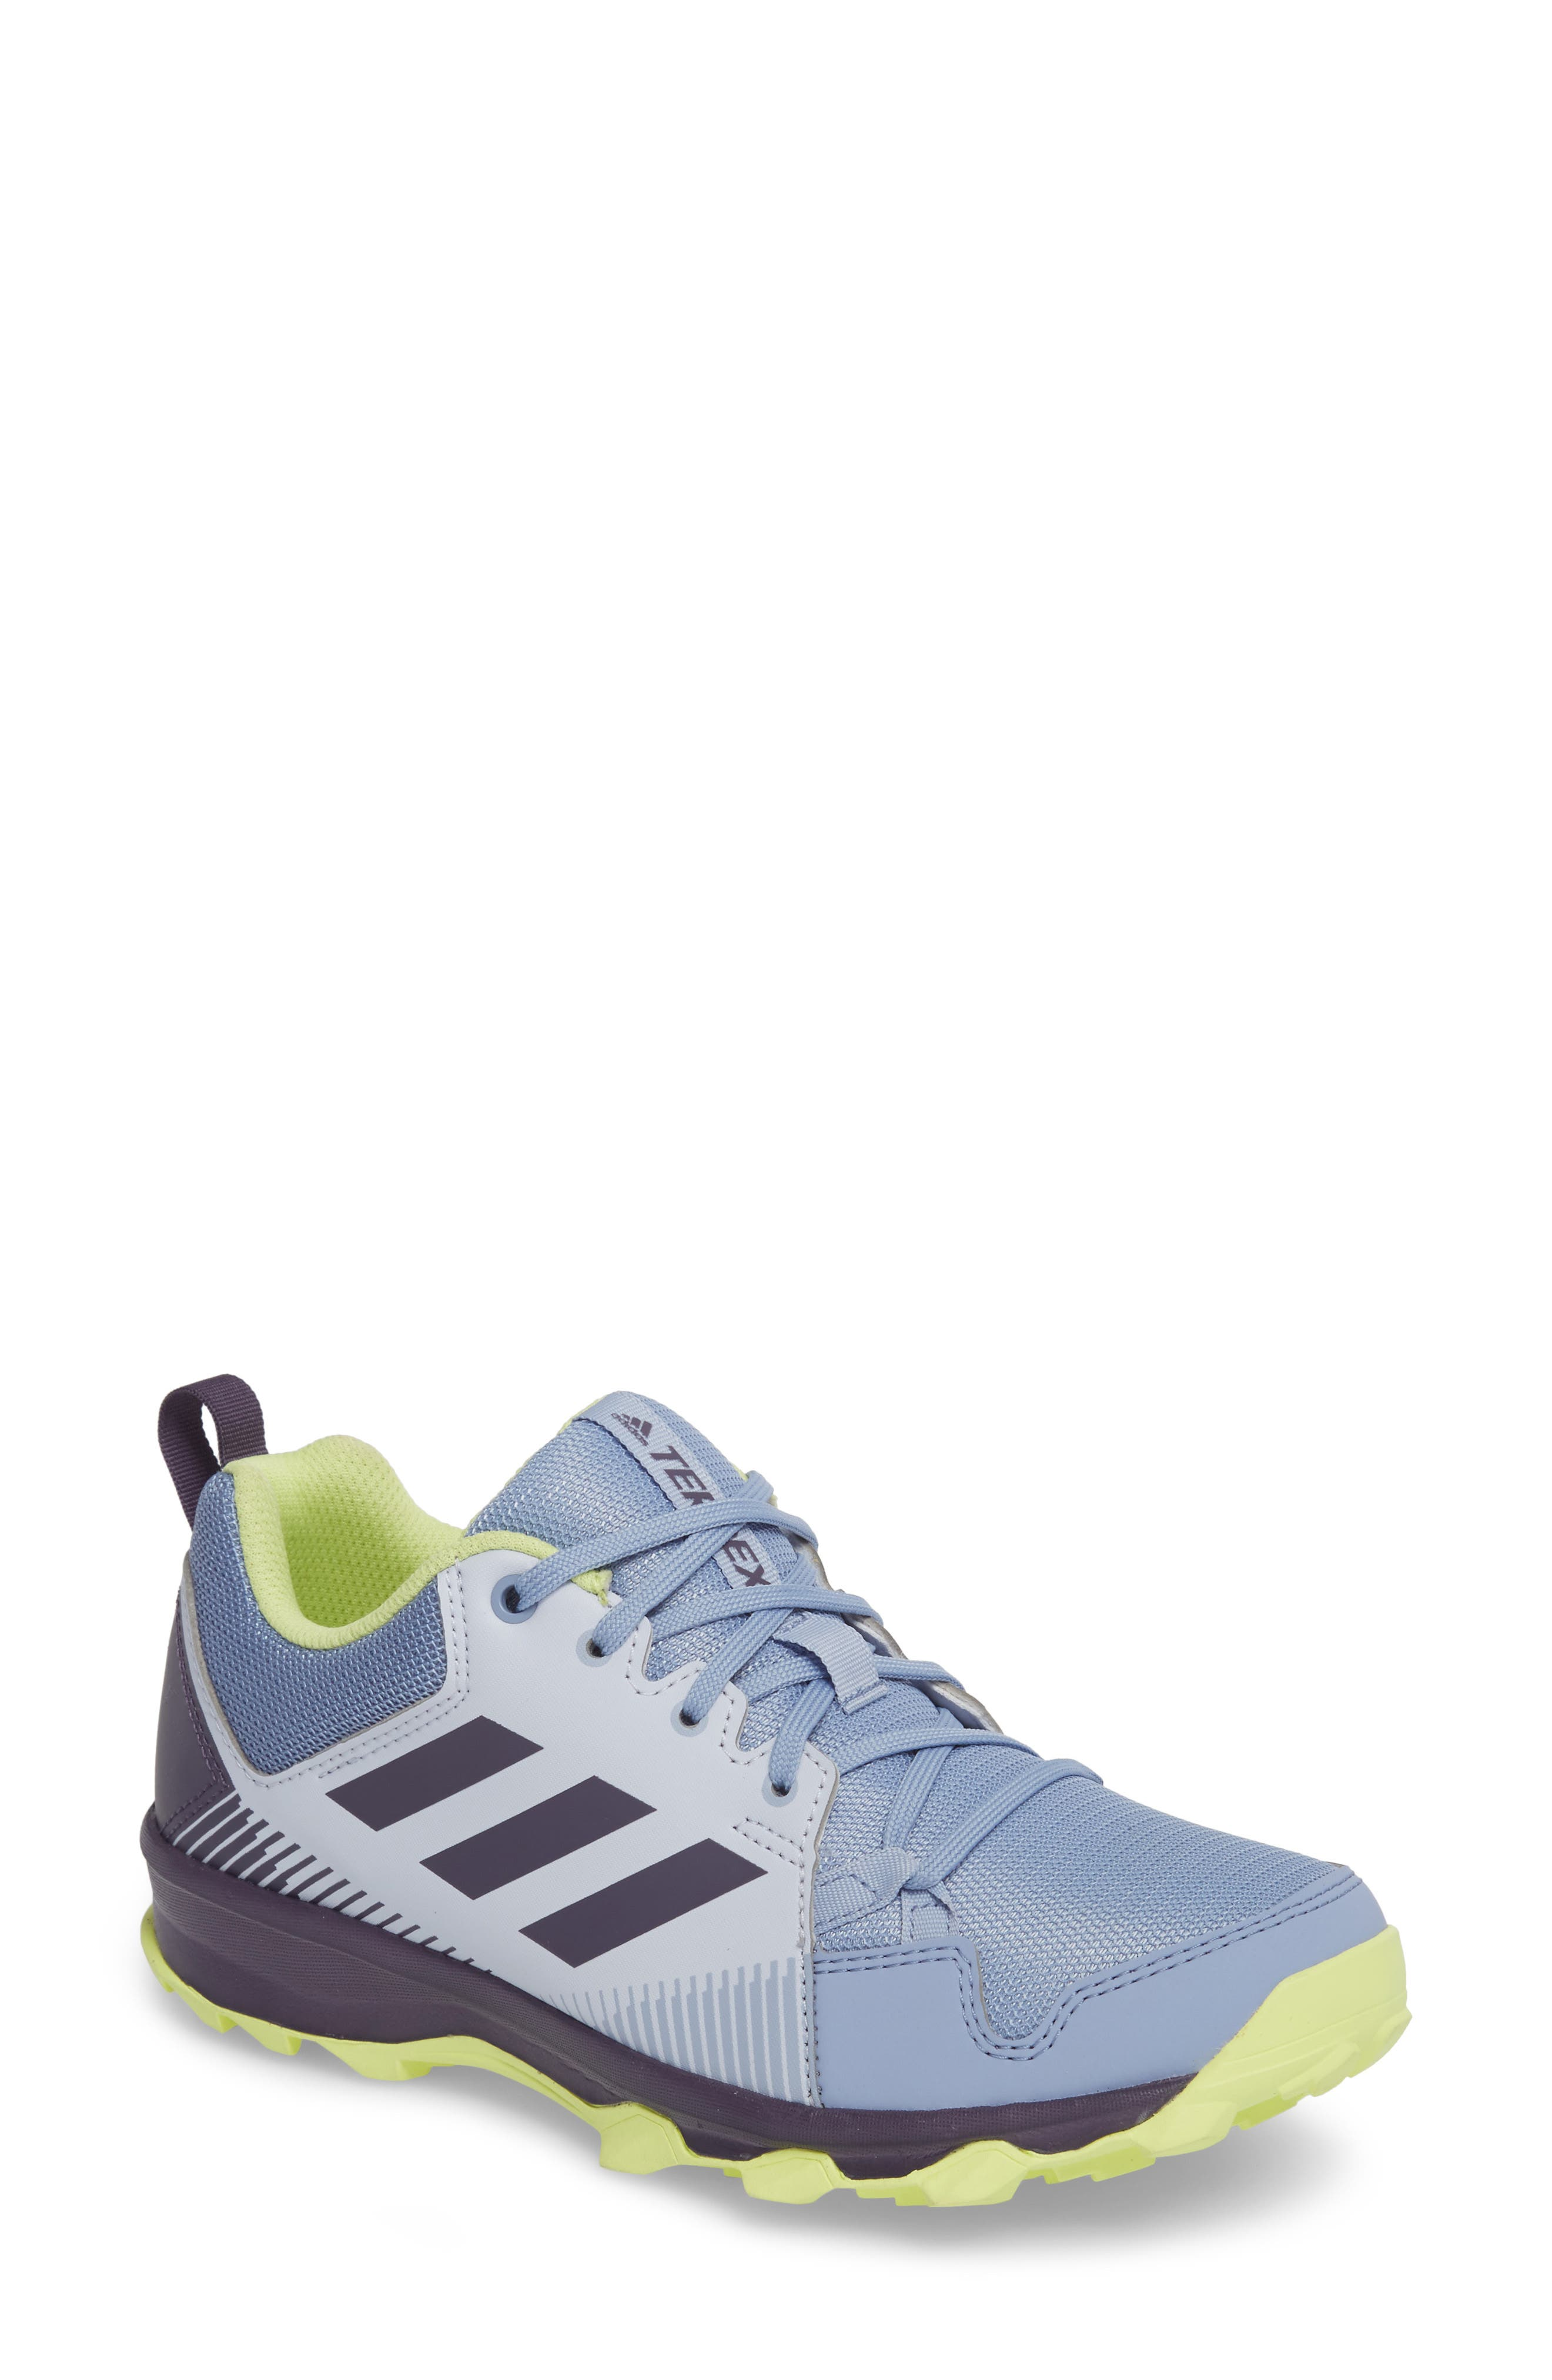 'Tracerocker' Athletic Shoe,                             Main thumbnail 1, color,                             Aero Blue/ Purple/ Yellow